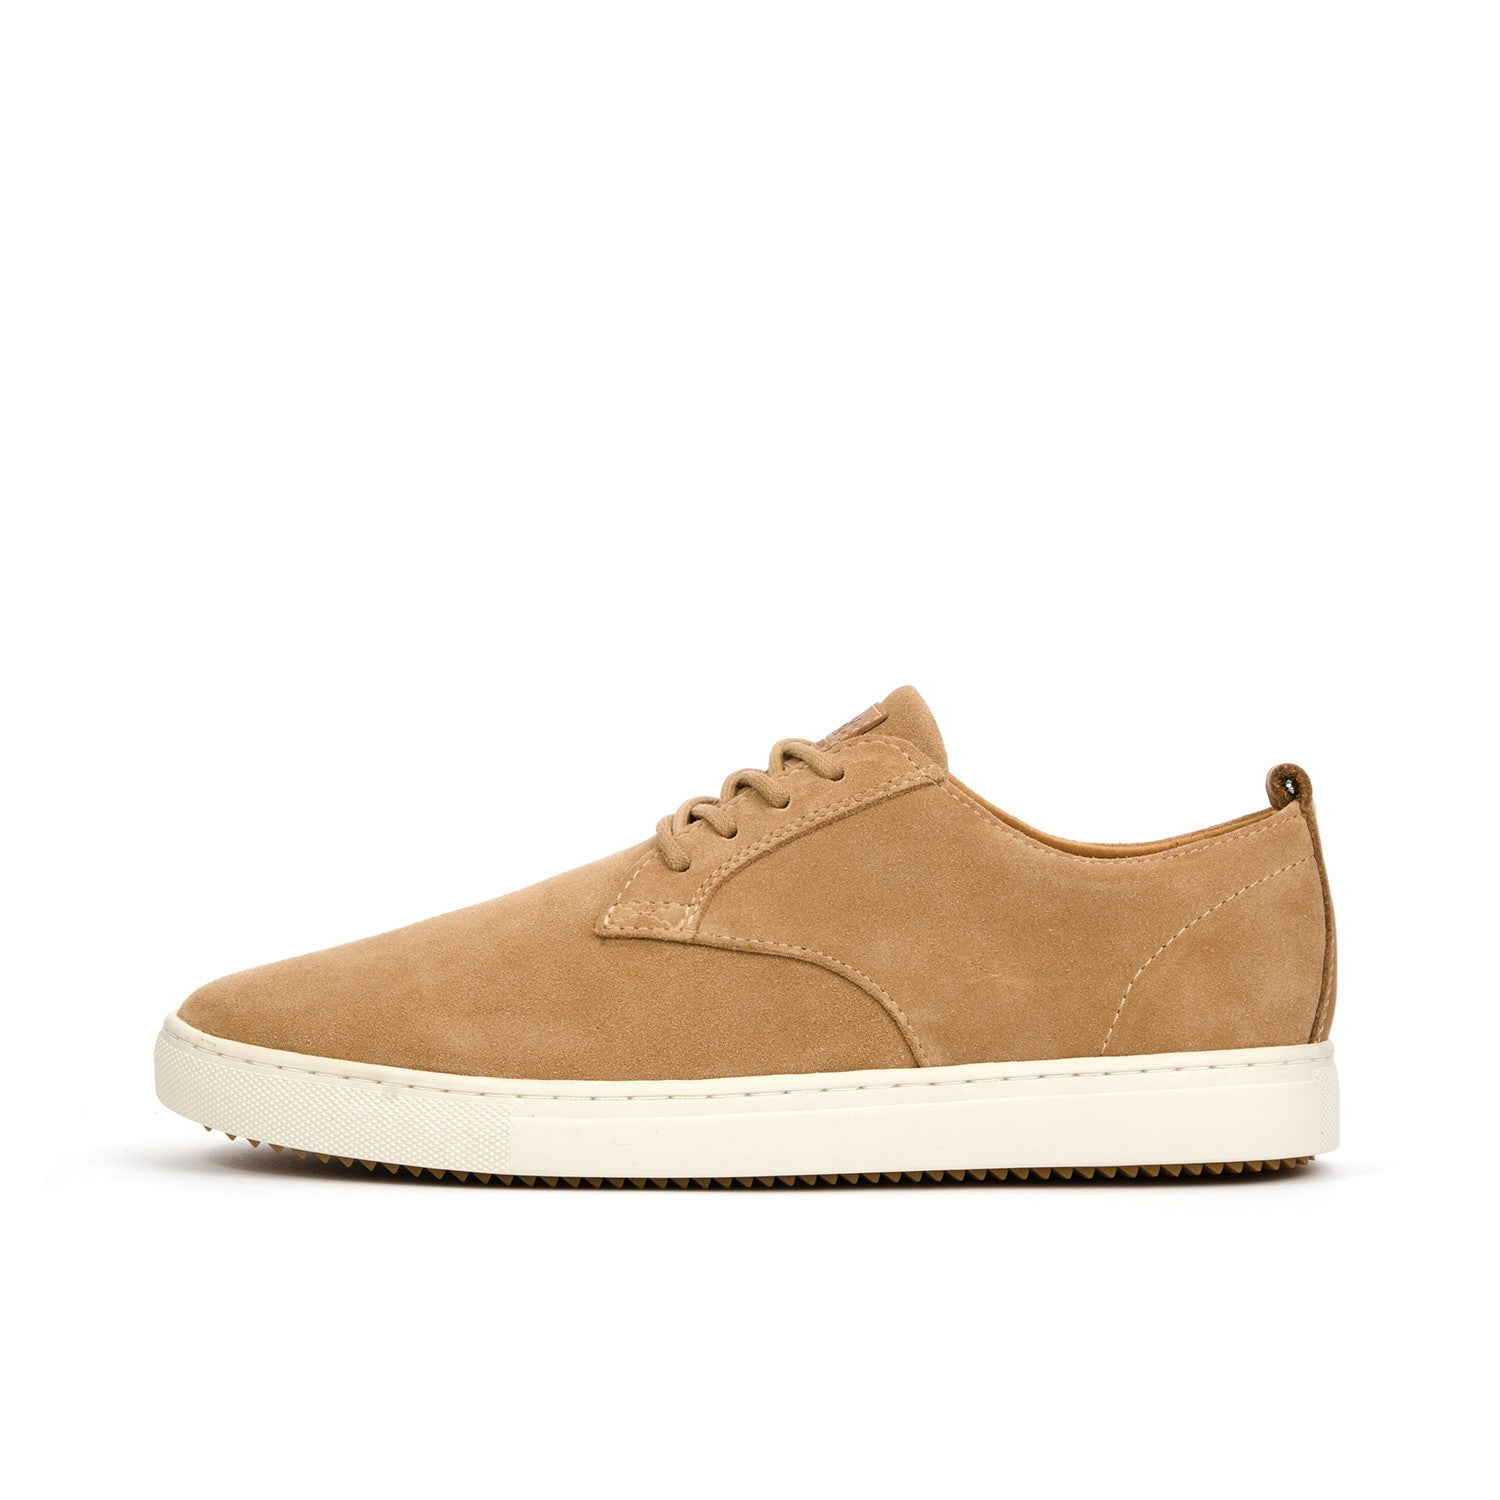 Clae Ellington SP Cinnamon Suede - Concrete